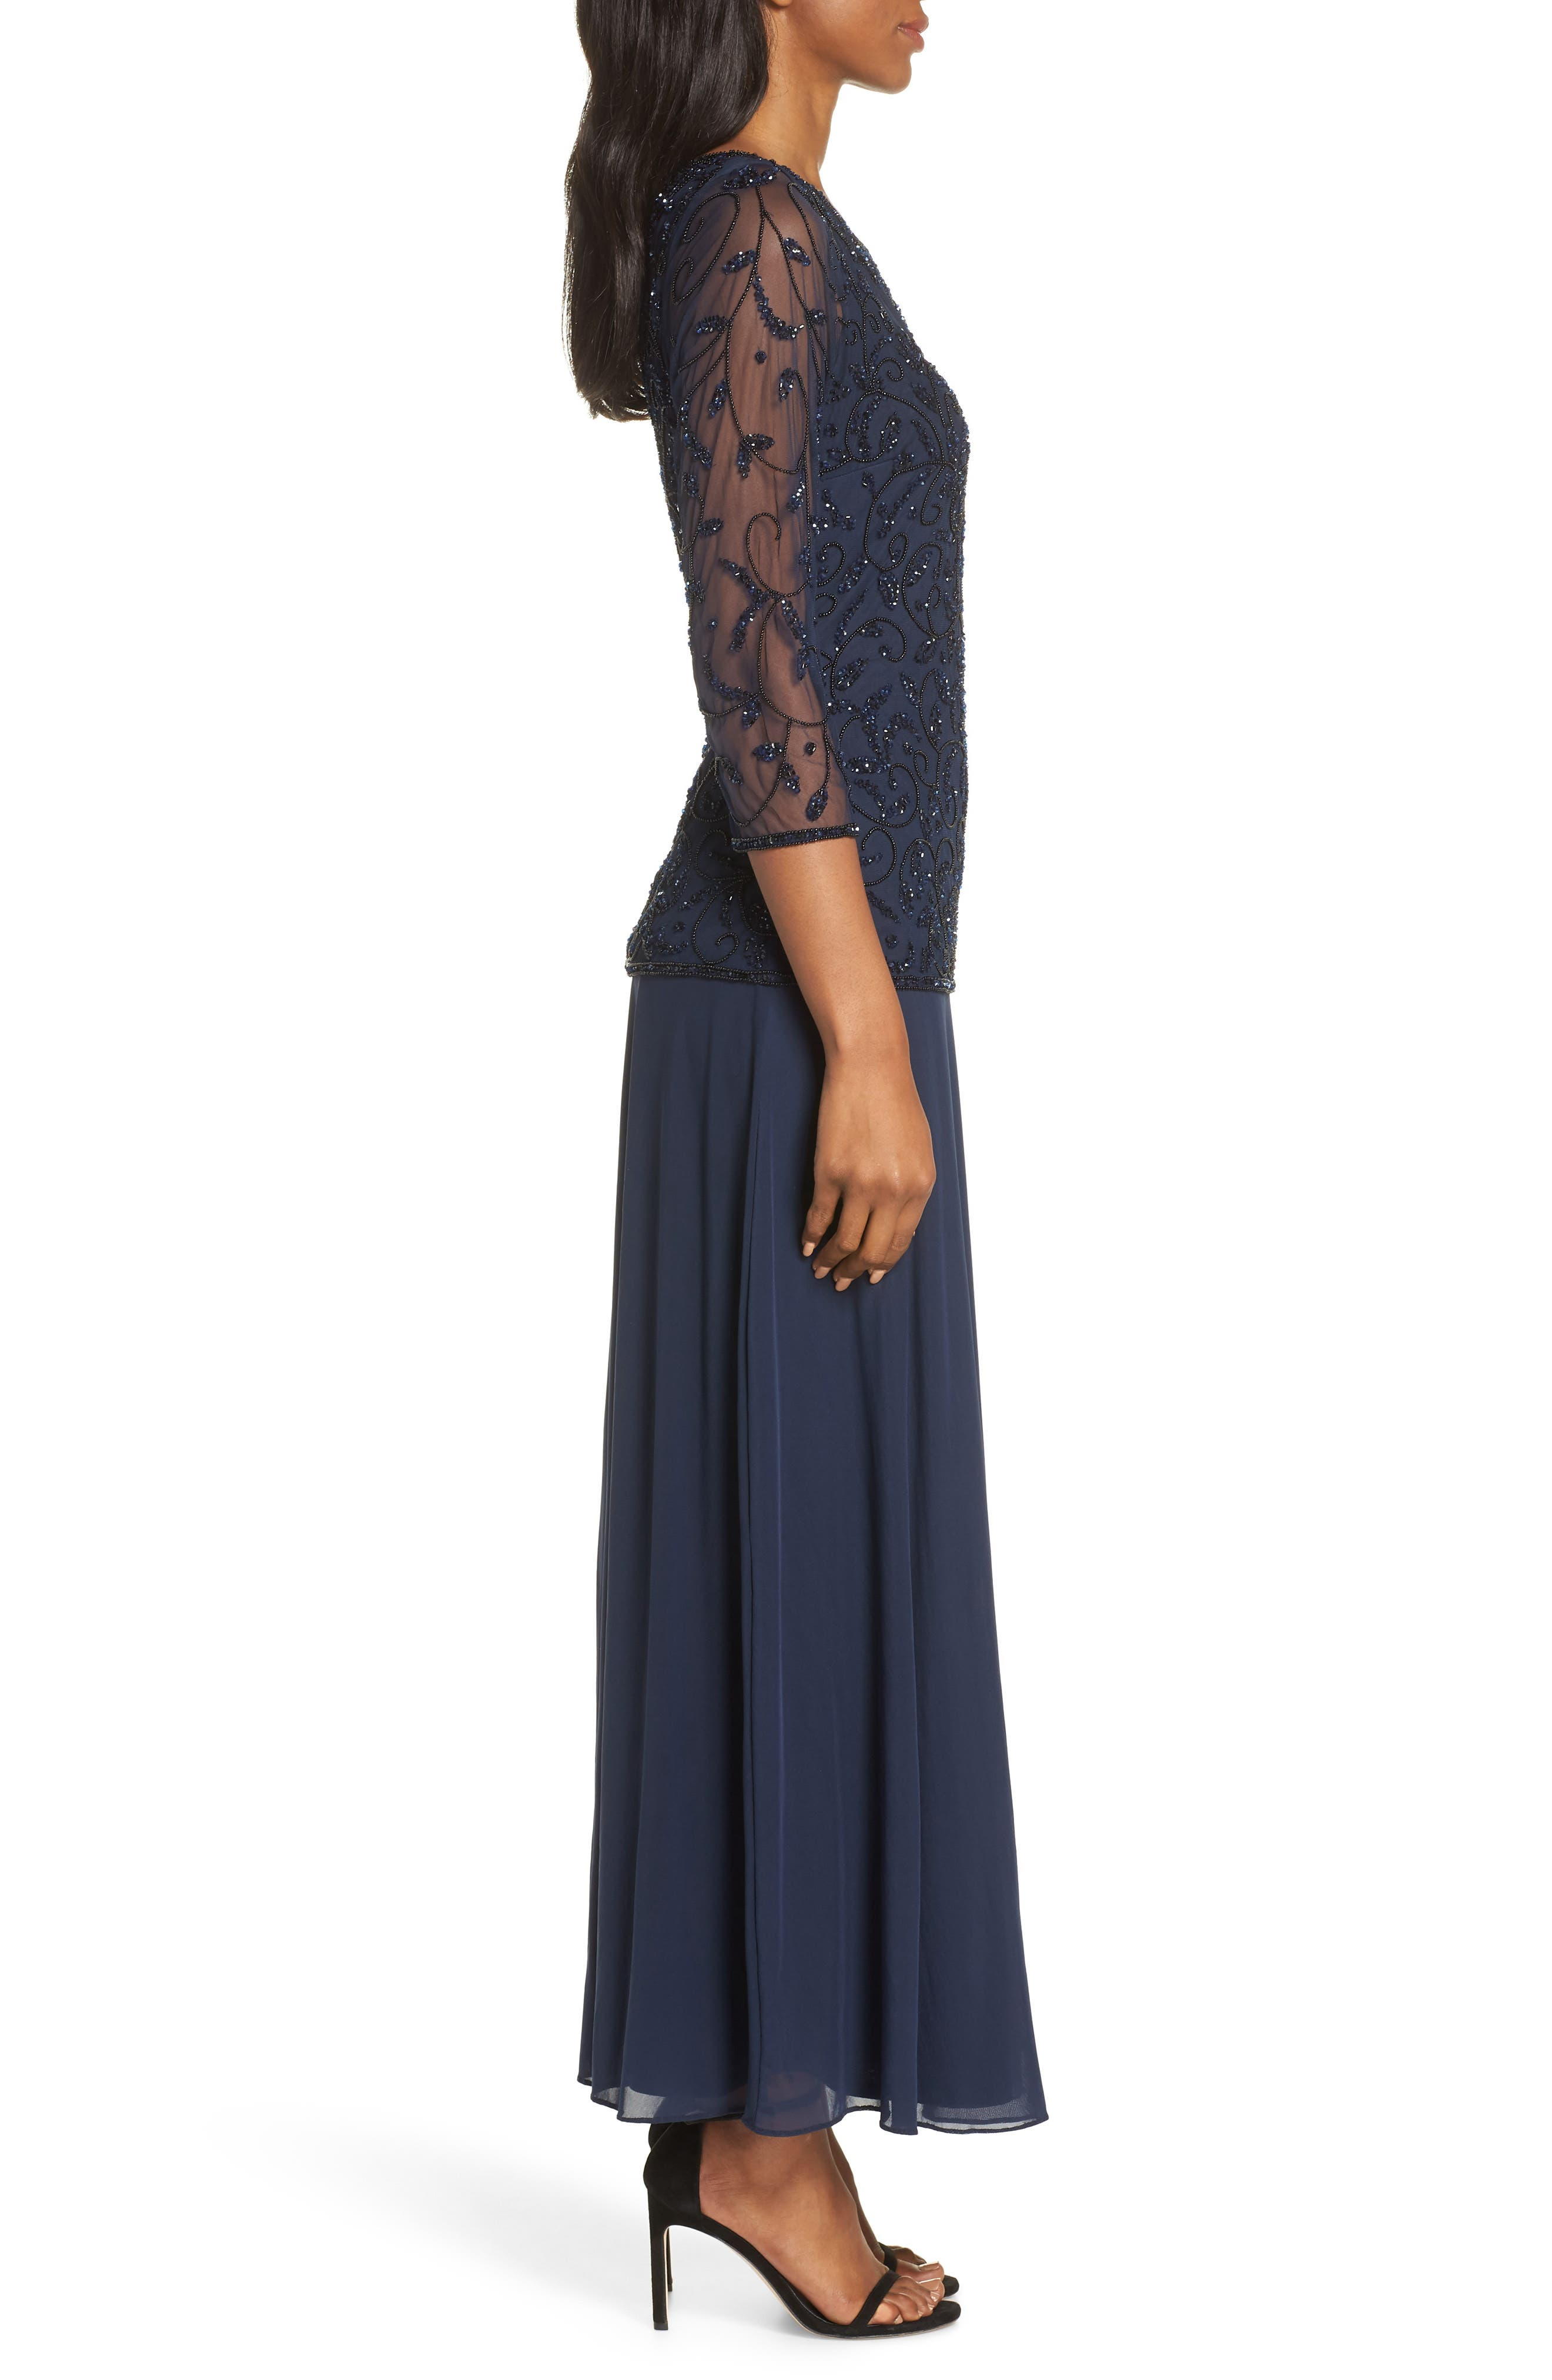 PISARRO NIGHTS, Beaded Mesh Mock Two-Piece Gown, Alternate thumbnail 4, color, NAVY/ BLACK